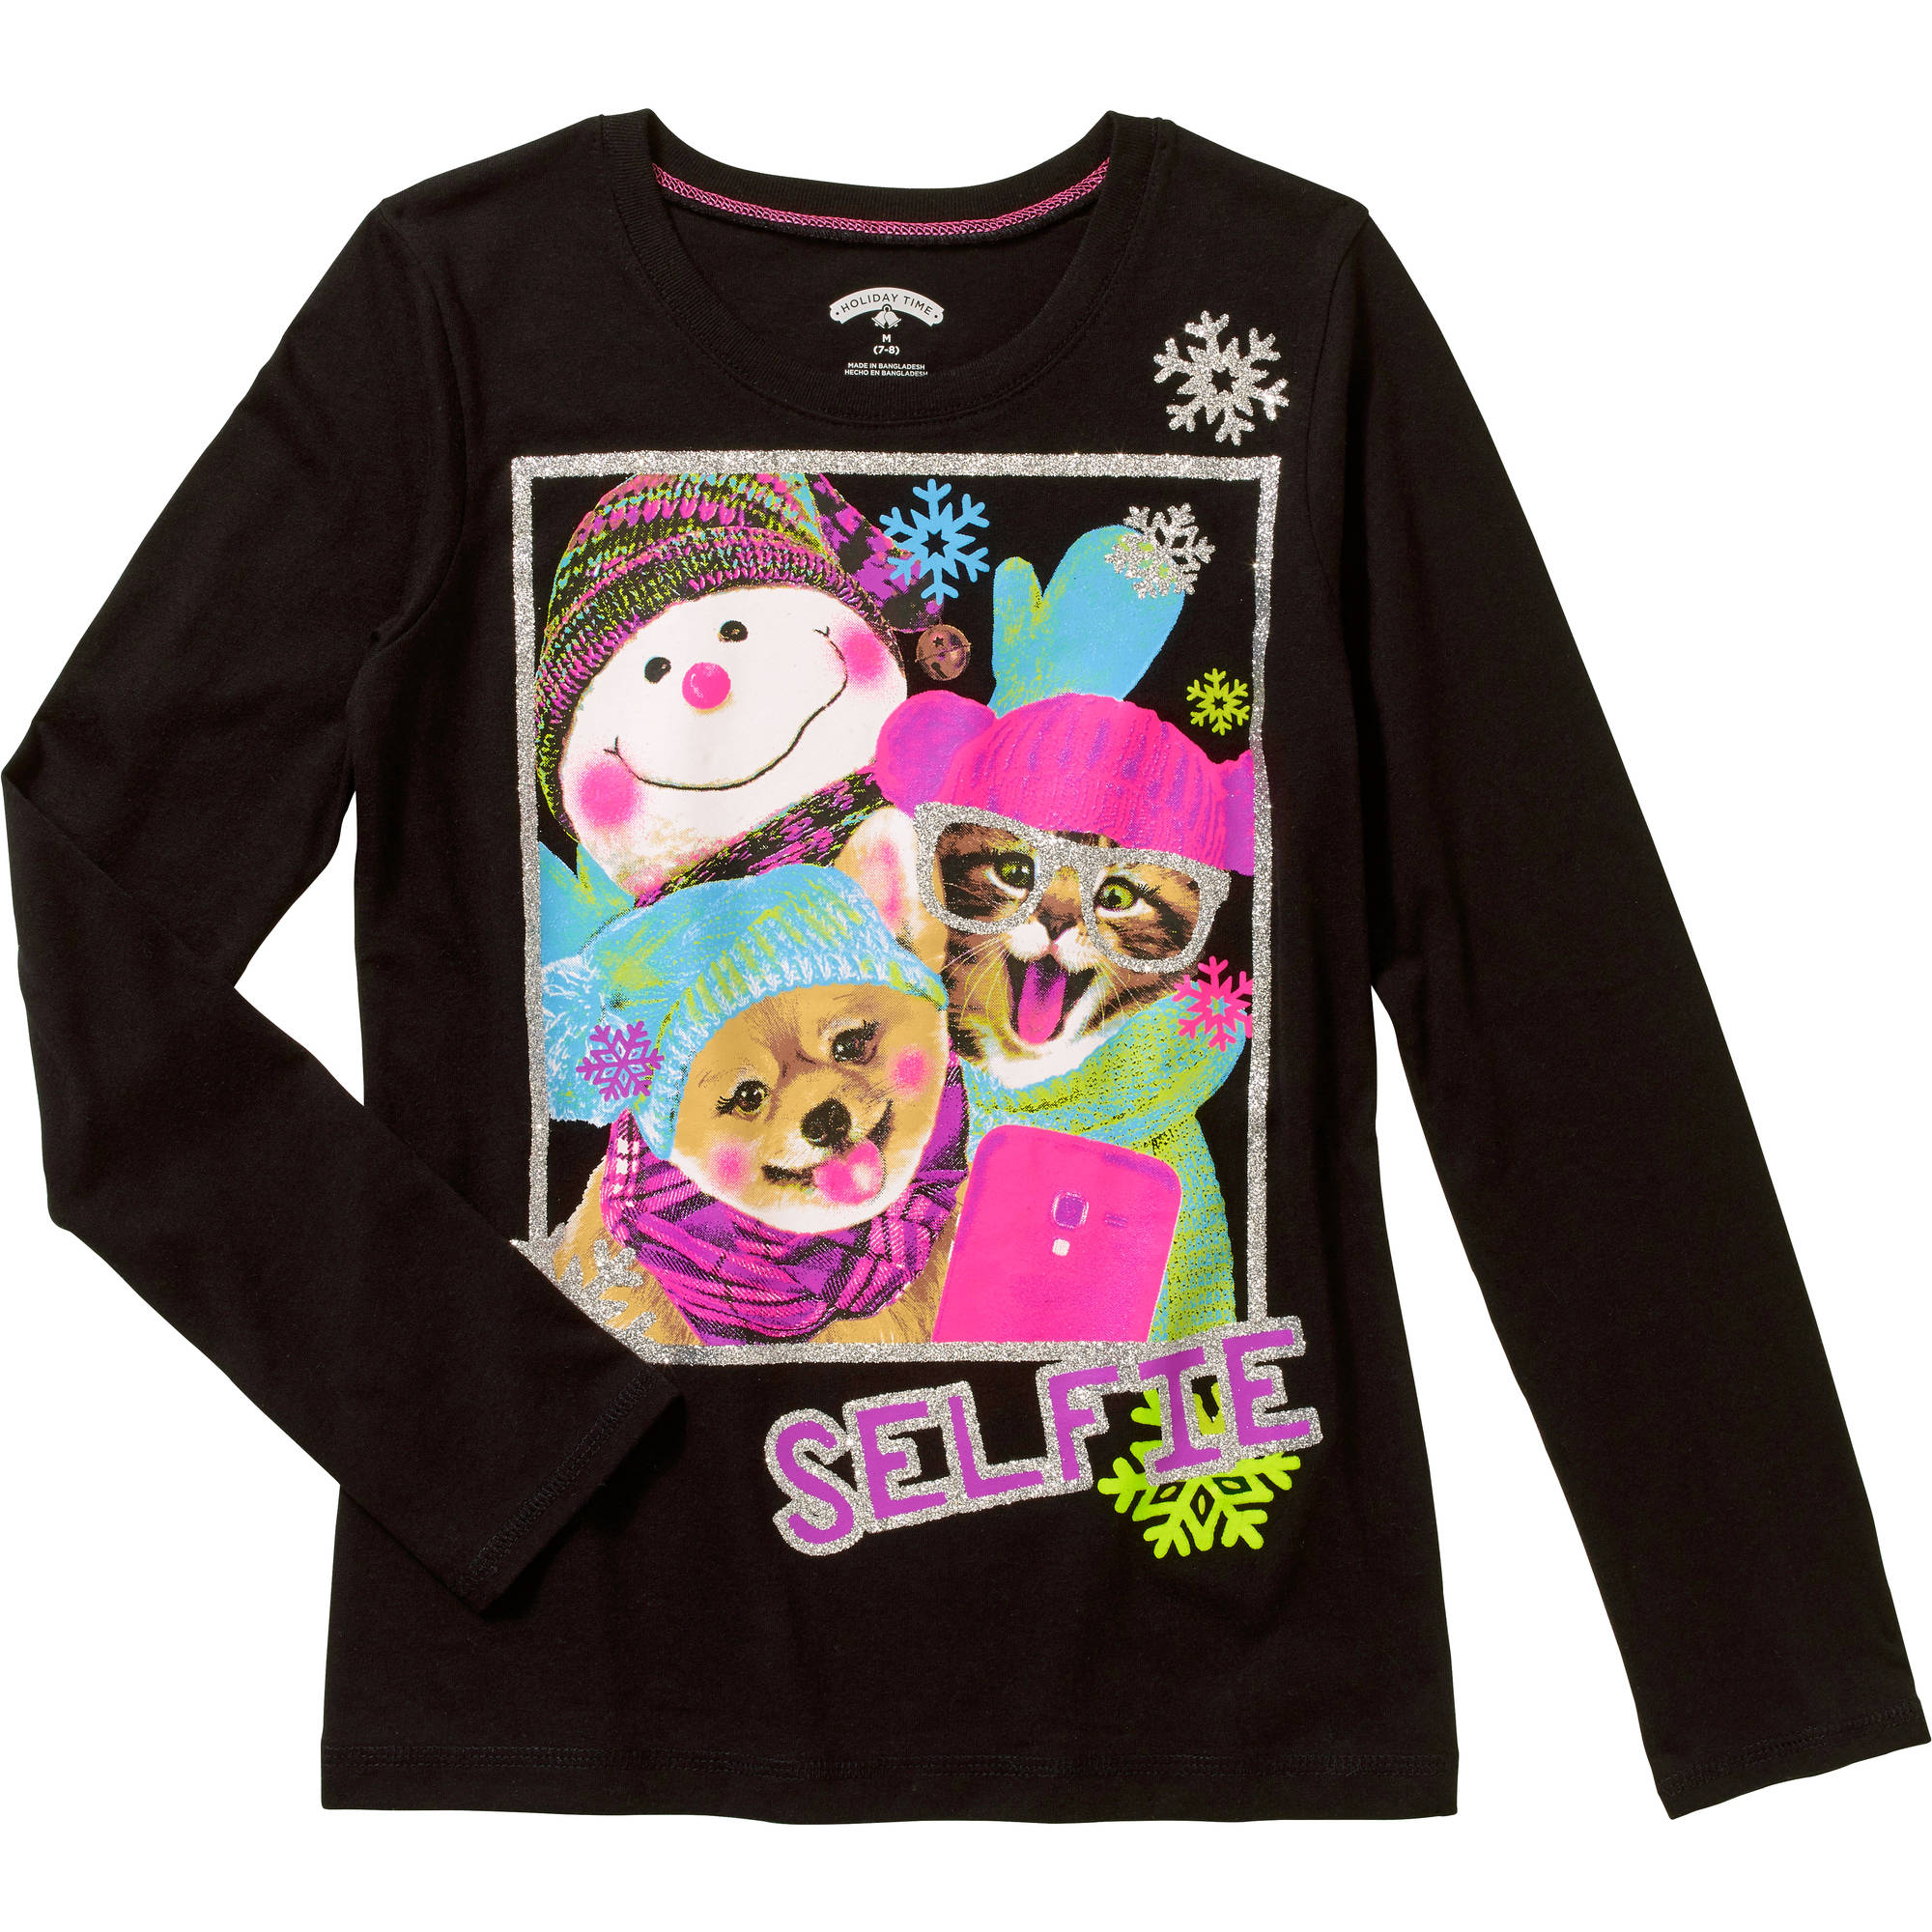 Girls' Long Sleeve Christmas Selfie Crew Neck Graphic Tee